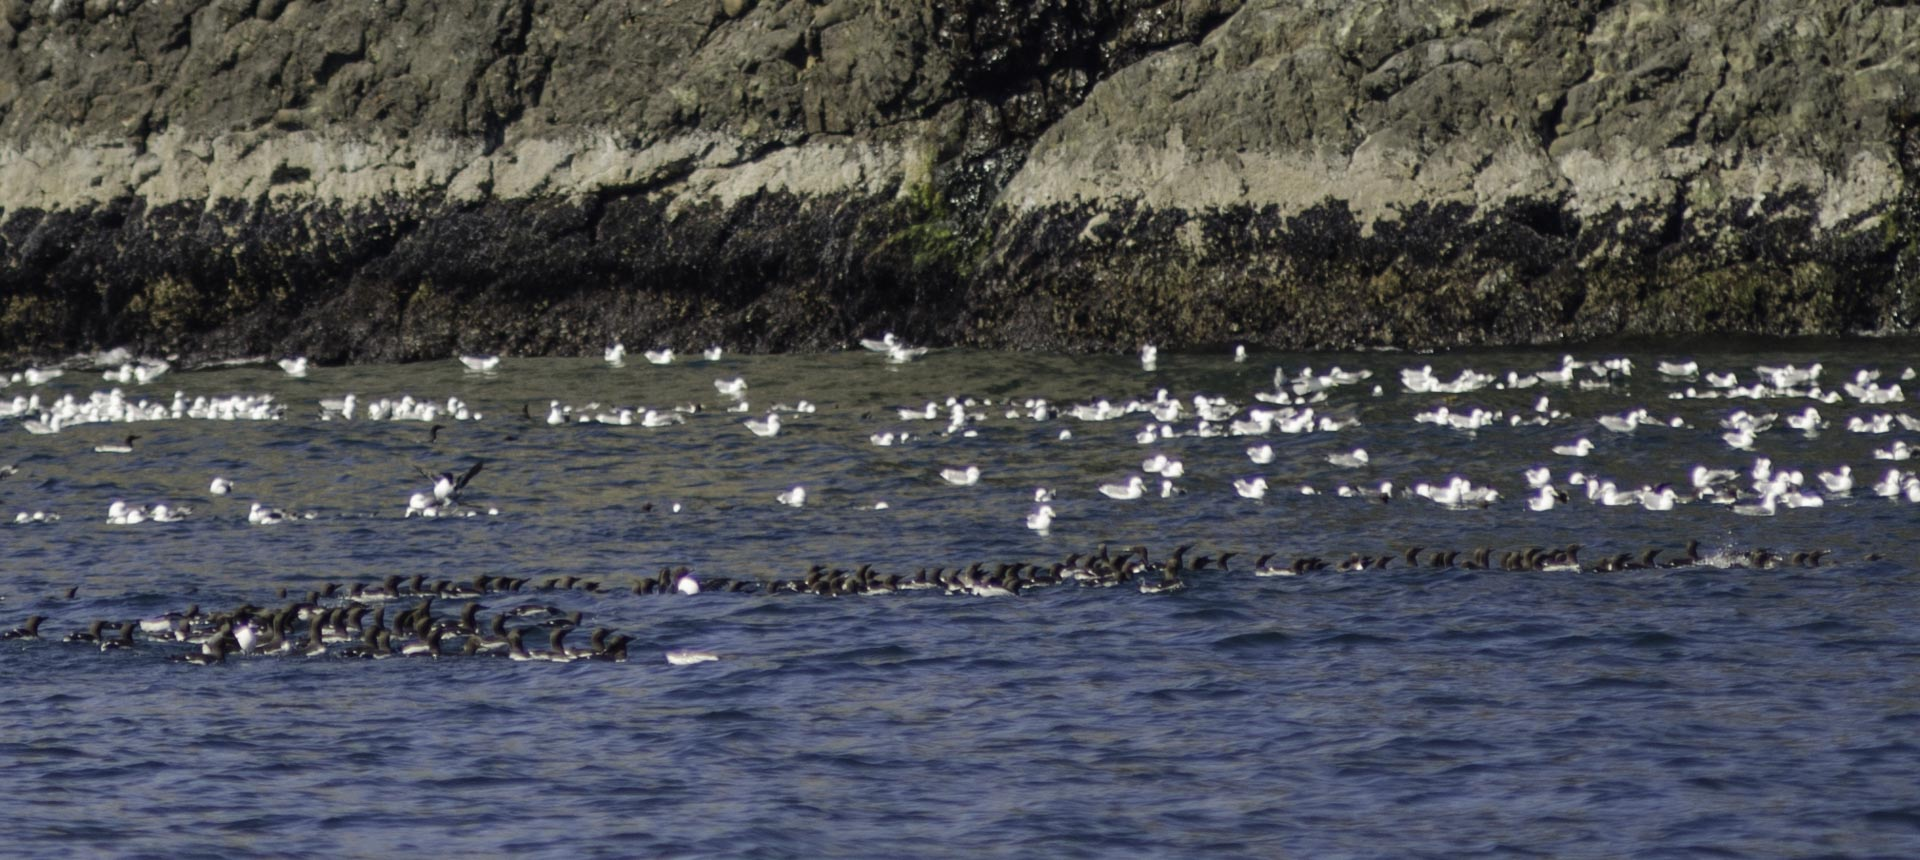 Common murres and kittiwakes